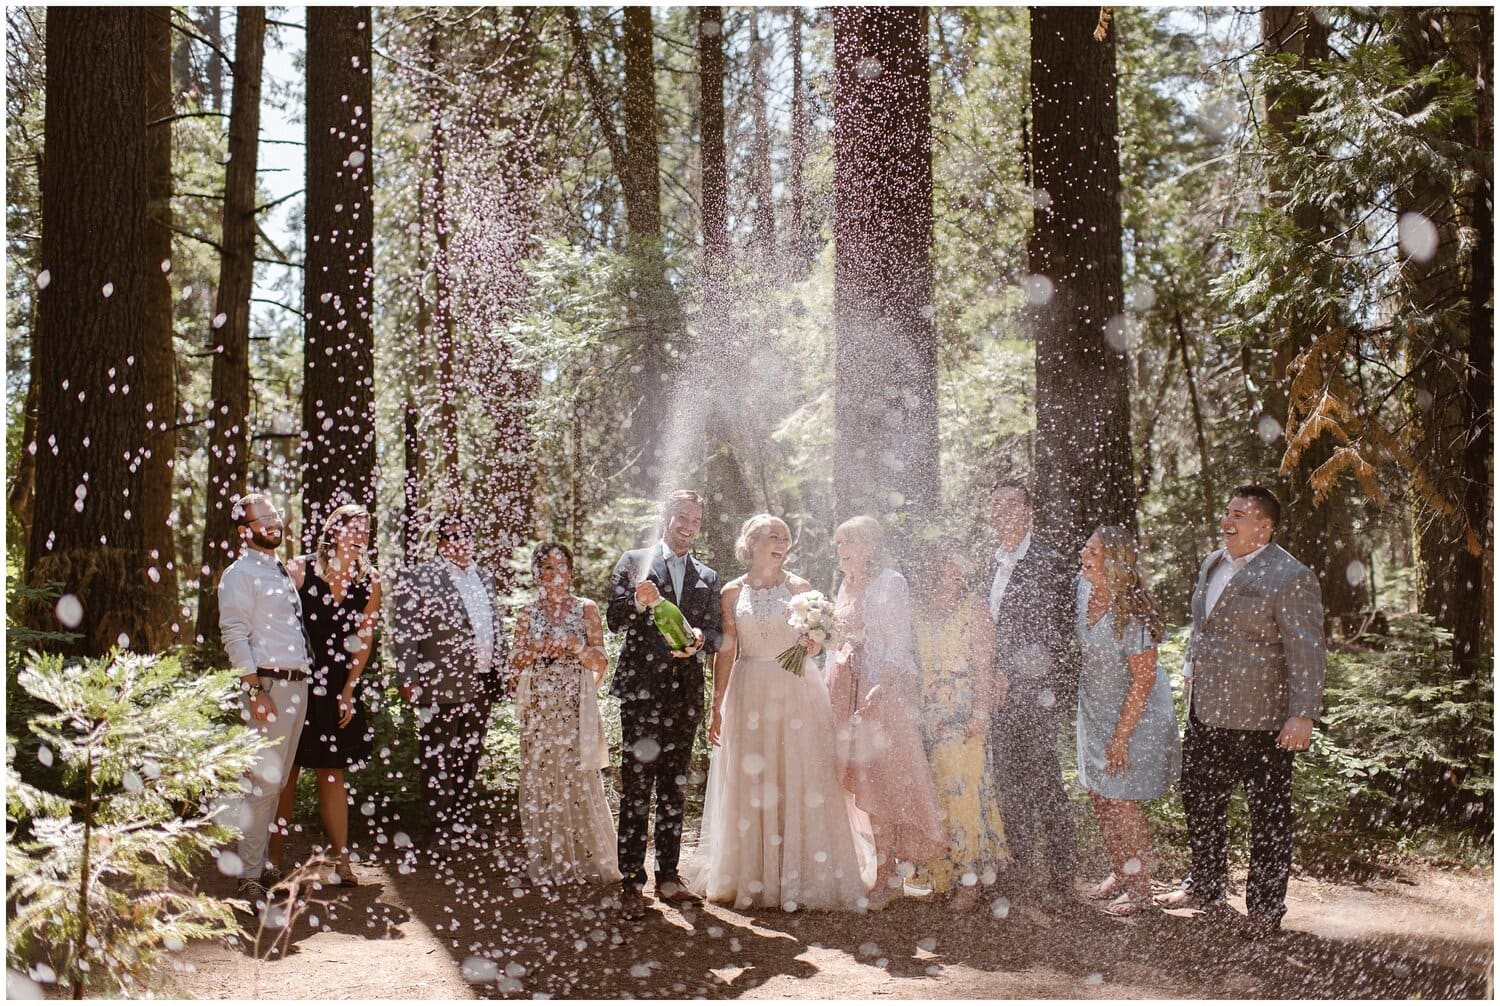 Bride and groom spray a bottle fo champagne with their friends and family on their wedding day.